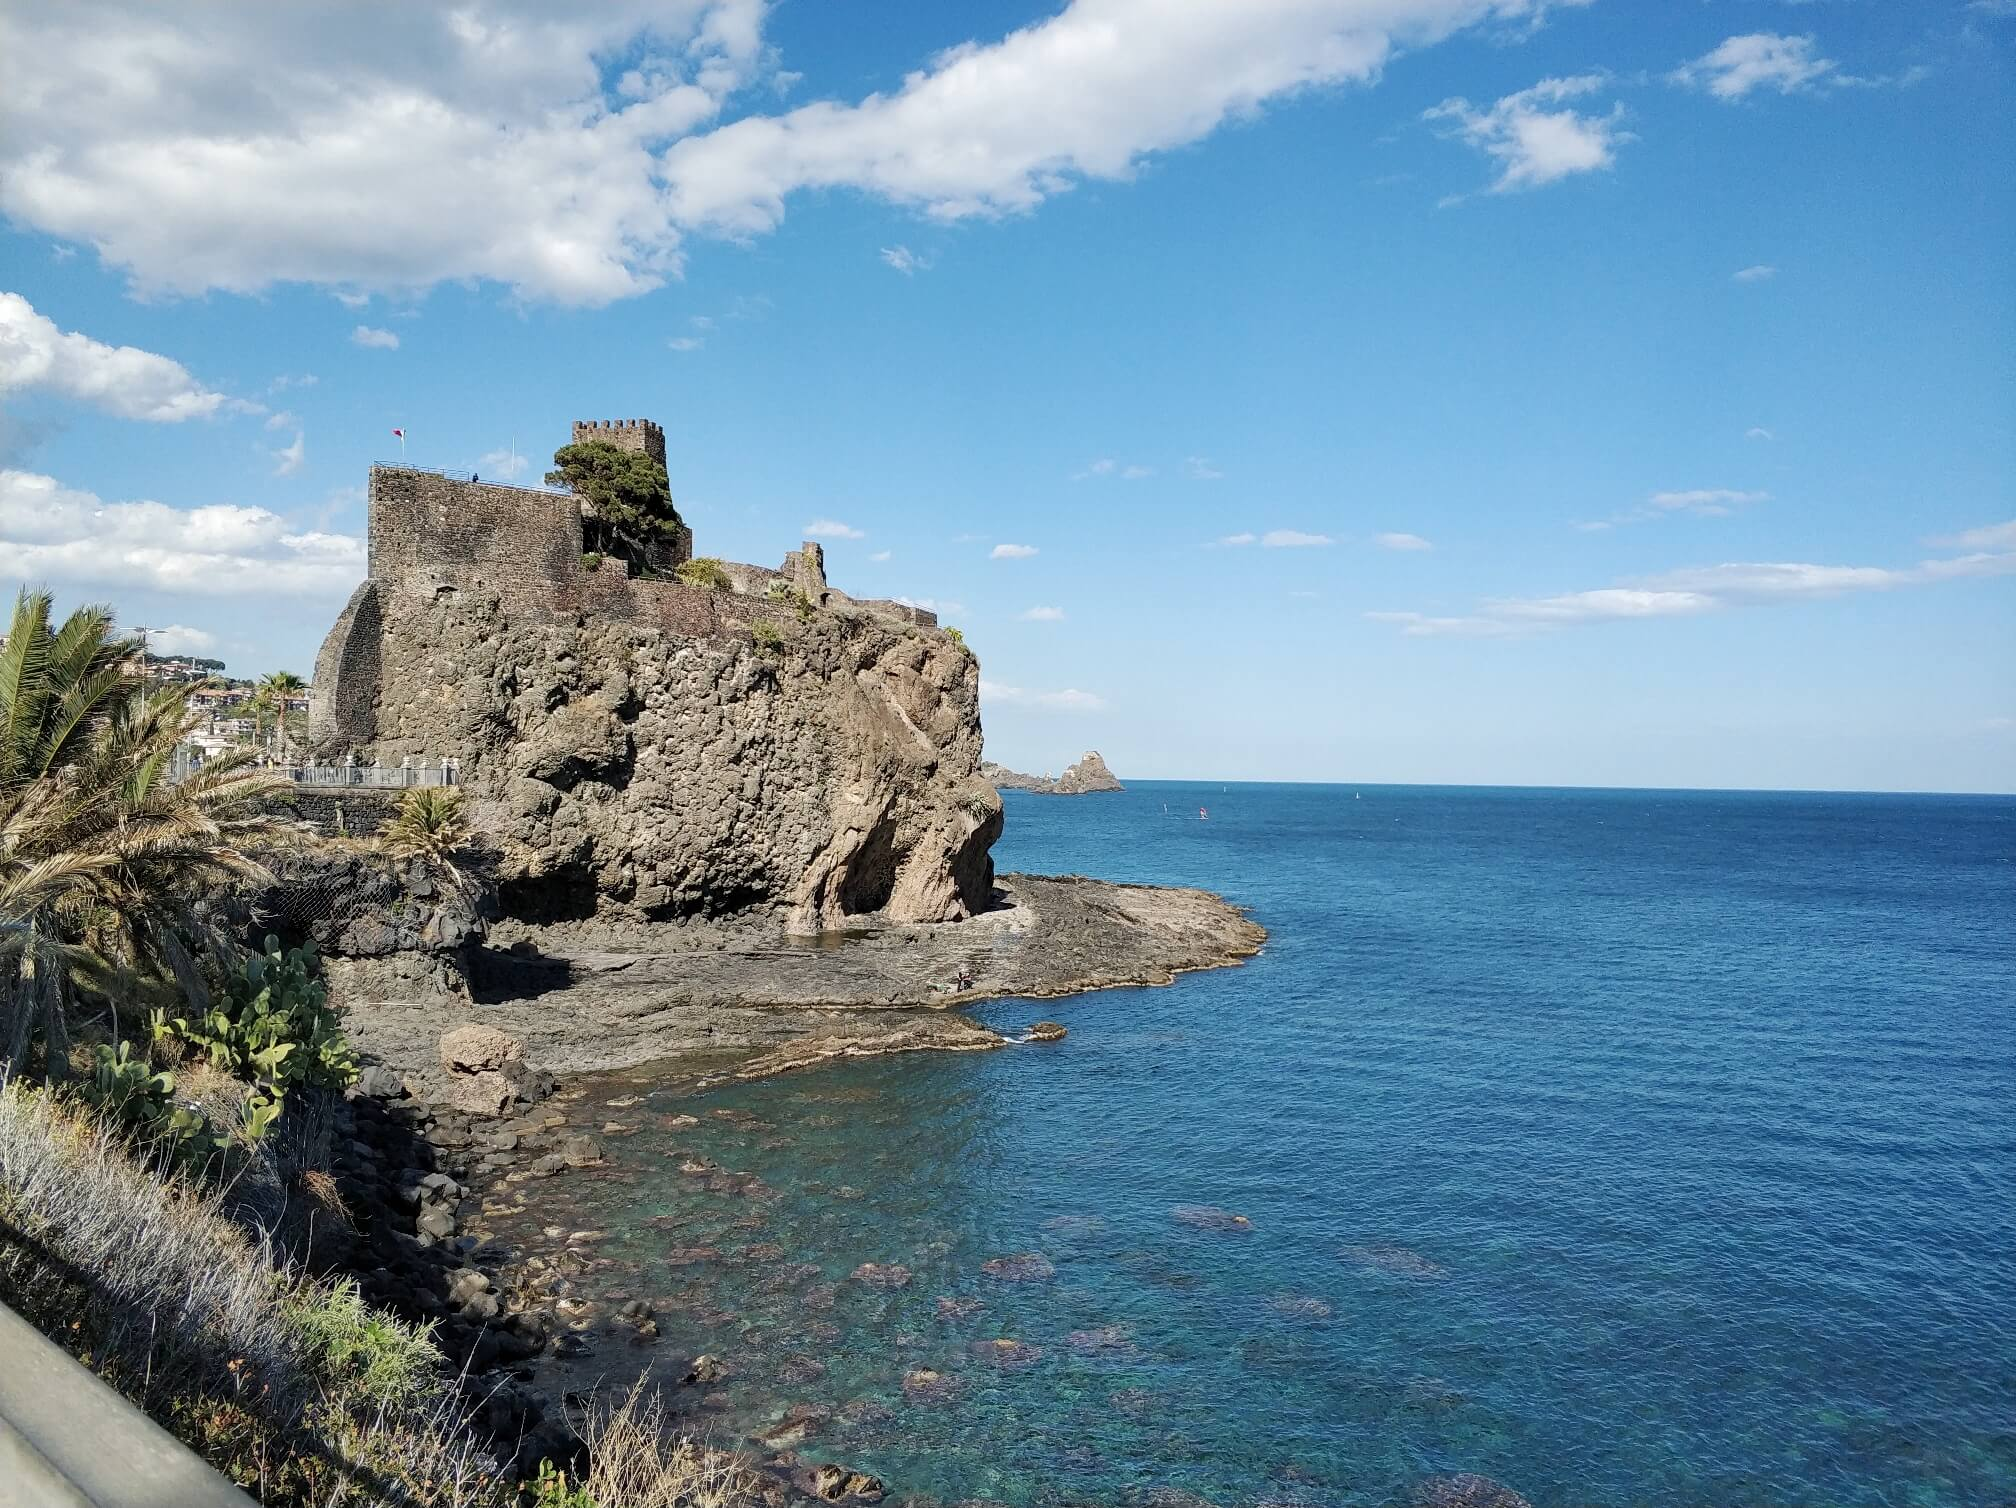 The castle and the sea